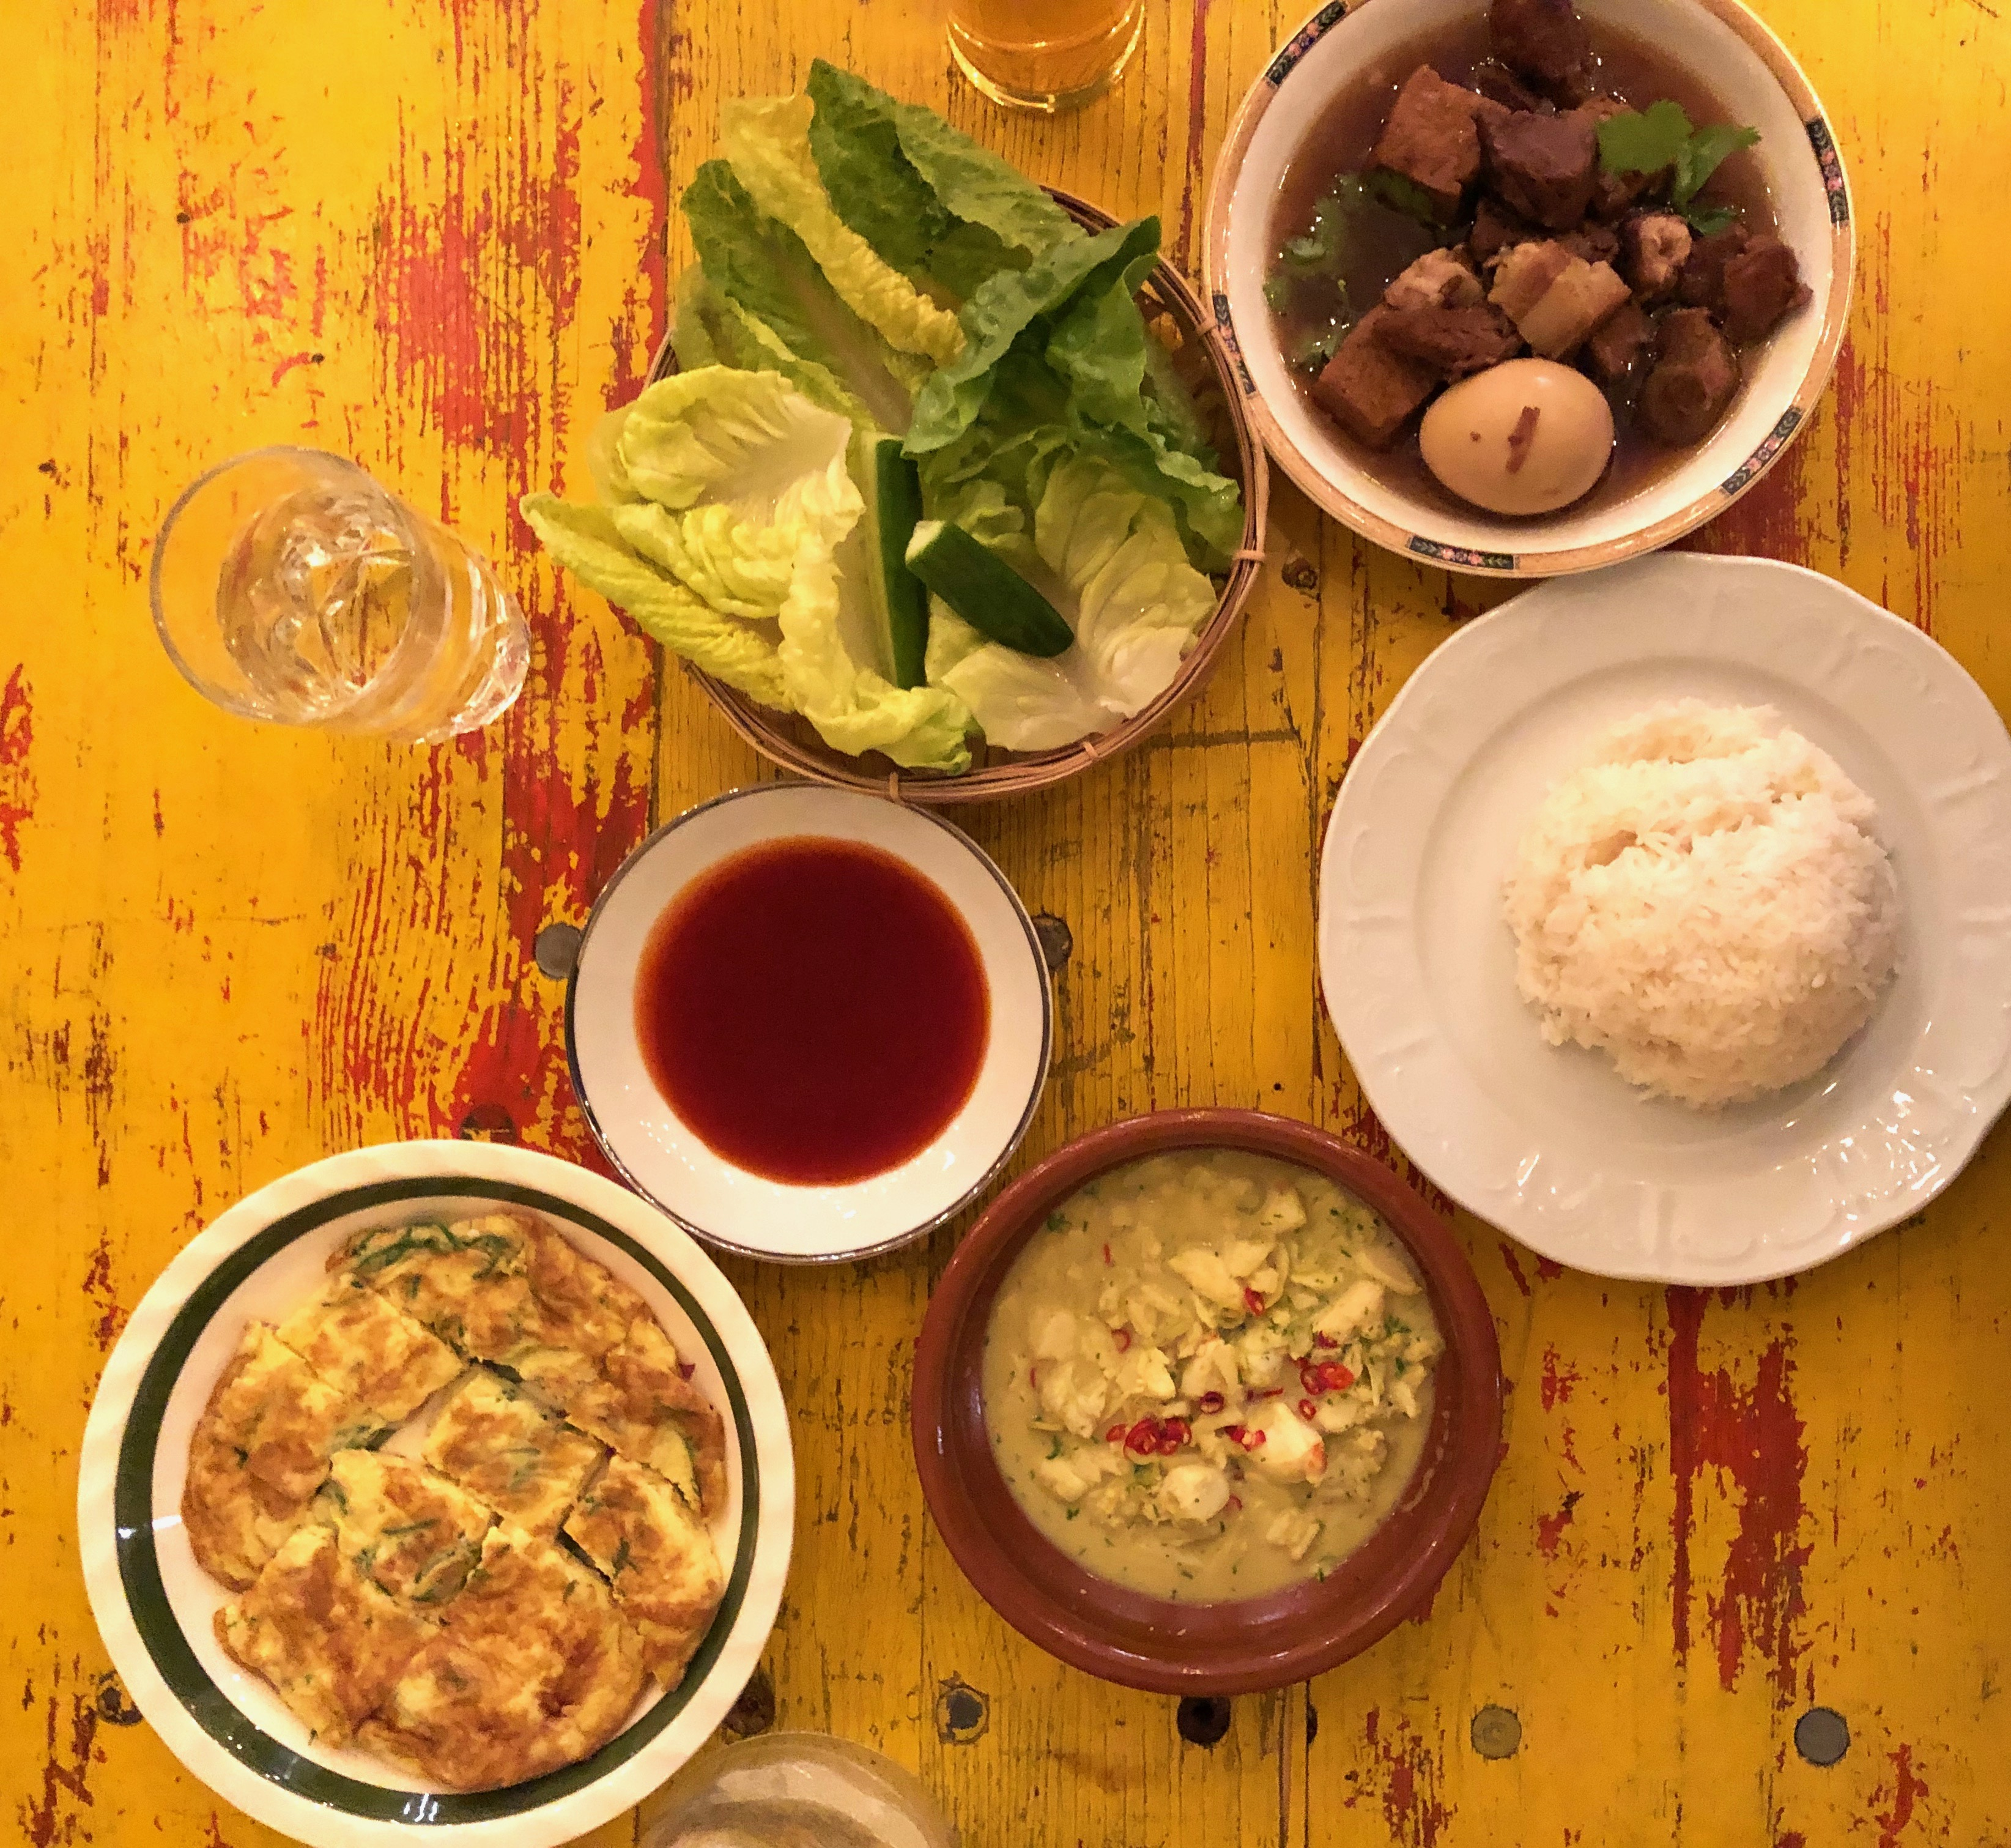 A spread of dishes, including pork belly in a dark soy sauce, green lettuce leaves, a mound of white rice, and a sliced omelet sit over a burnished wood table